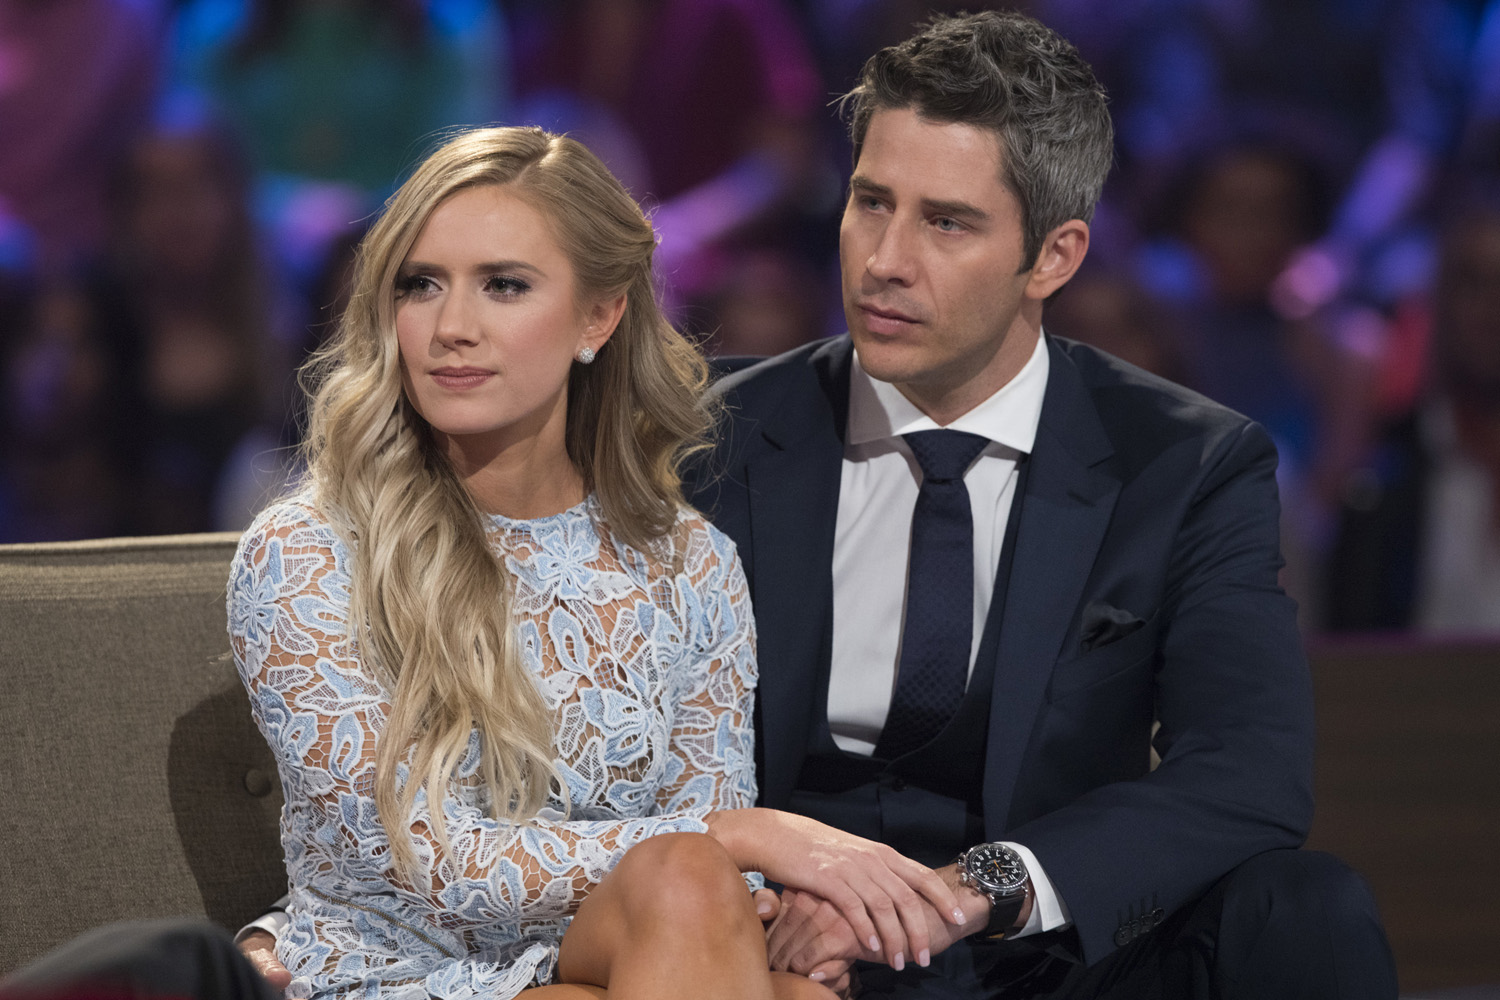 """This image released by ABC shows Lauren Burnham, left, and Arie Luyendyk Jr. on """"The Bachelor: After the Final Rose."""" Luyendyk  says he's willing to take the heat for dumping Becca Kufrin to find true love with runner-up Lauren Burnham. His decision to break up with Kufrin during Monday's season finale after they'd become engaged prompted such descriptive headlines as """"horror,"""" """"brutal"""" and """"gut-wrenching,"""" (Paul Hebert/ABC via AP)"""